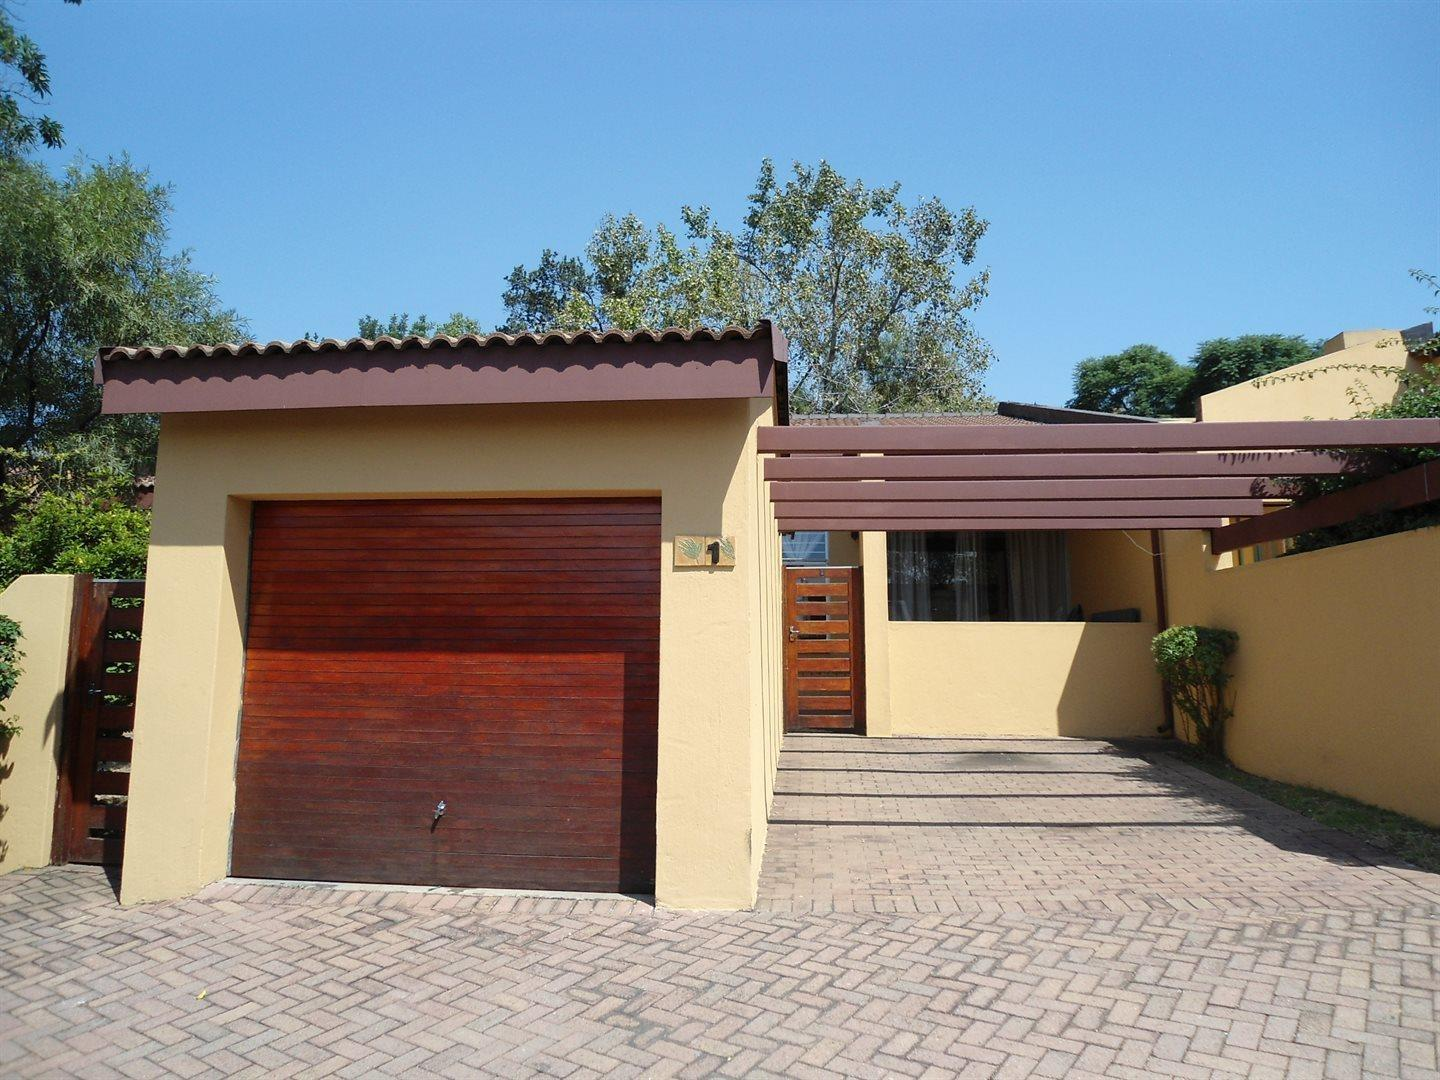 3 bedroom townhouse for sale in buccleuch for 3 bedroom townhomes